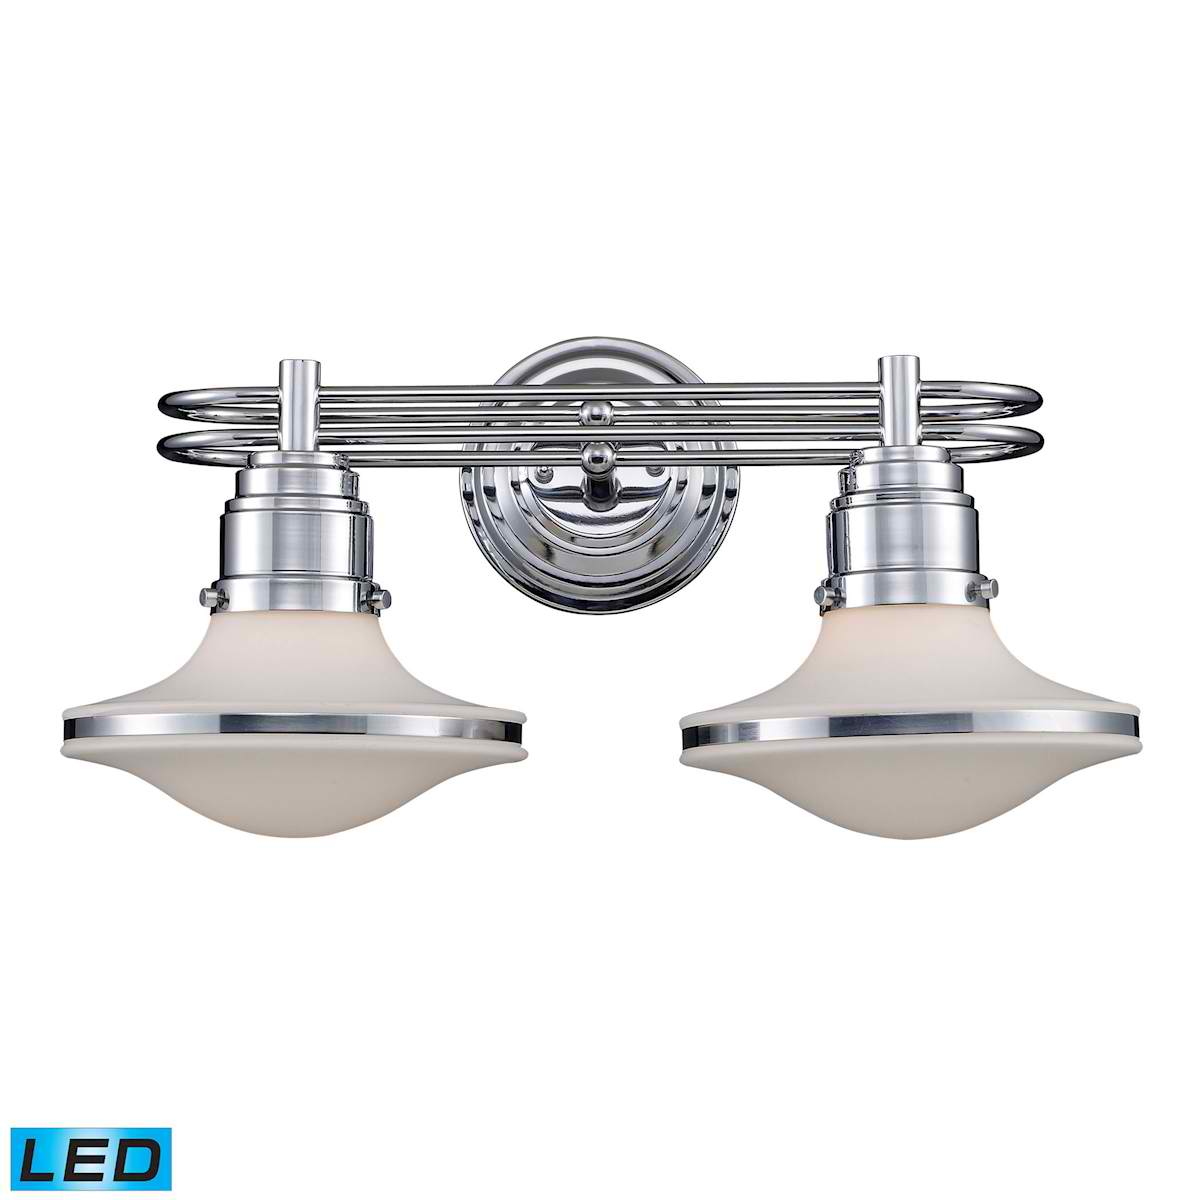 Retrospective 2-Light Bath Bar in Polished Chrome - LED, 800 Lumens (1600 Lumens Total) with Full Scale